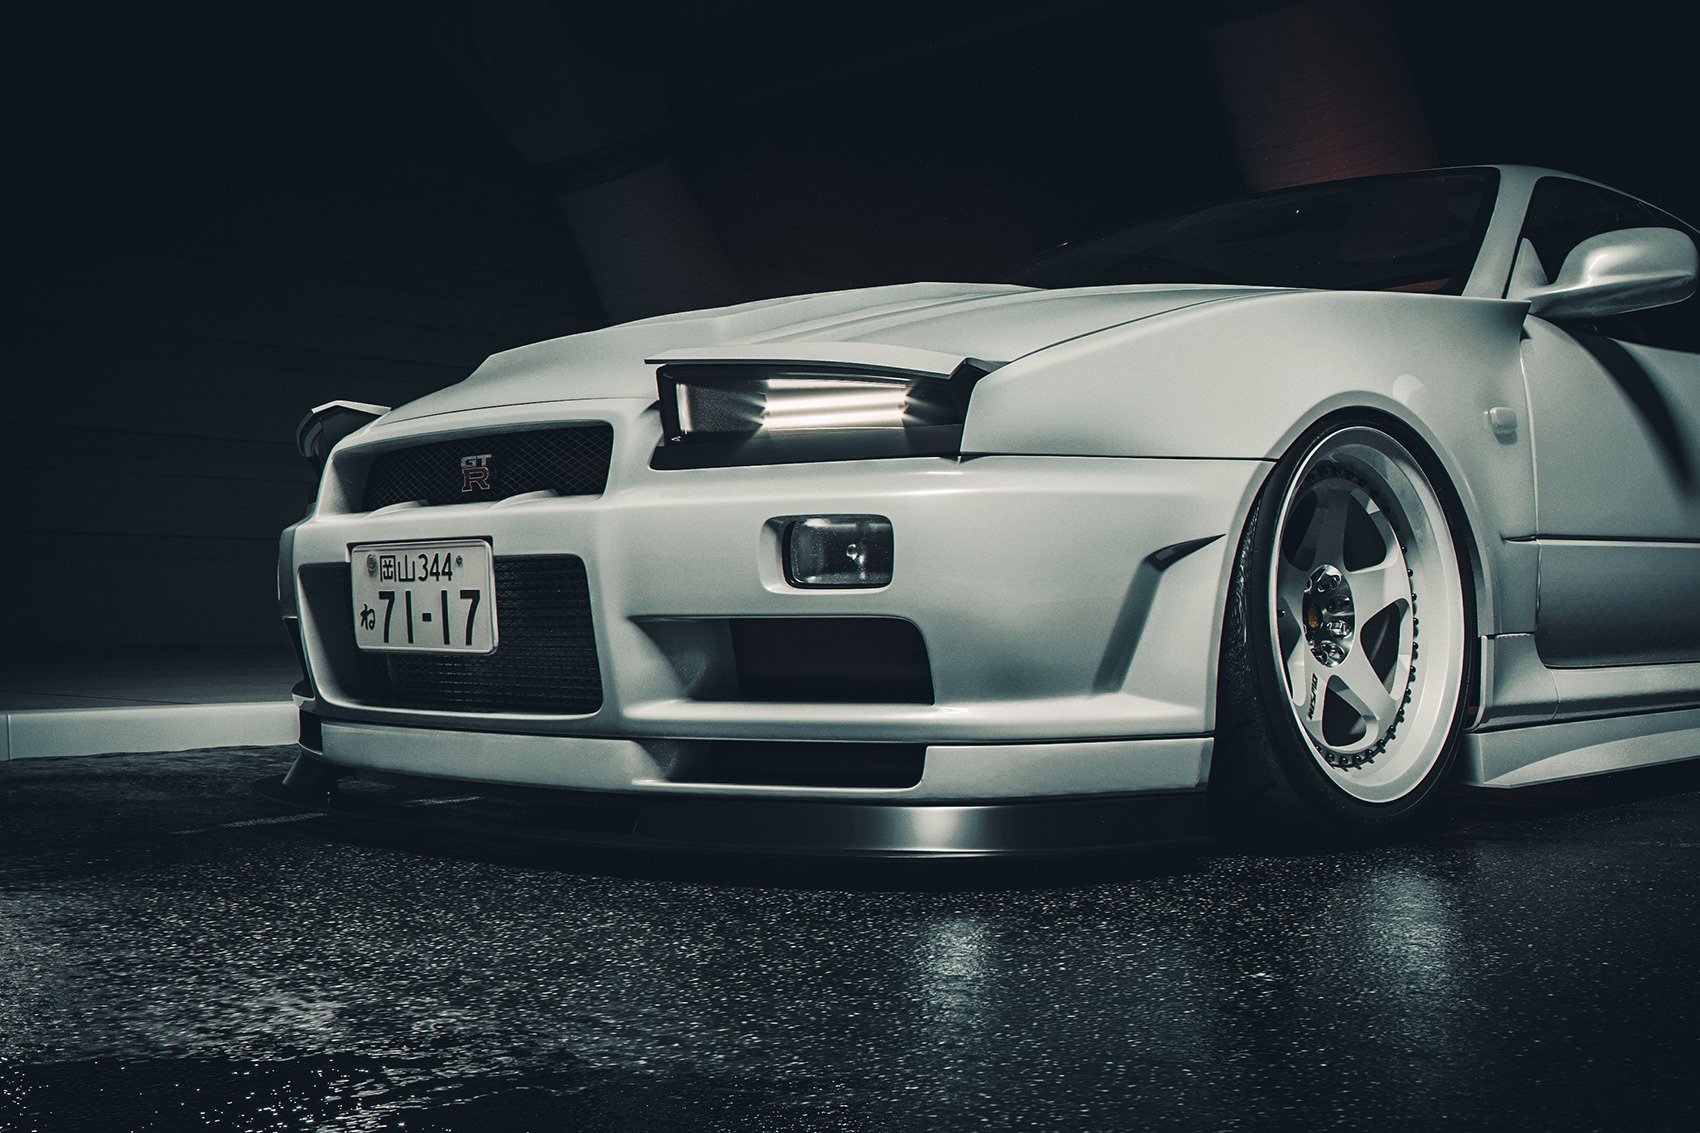 Nissan-GT-R-R34-pop-up-headligths-5